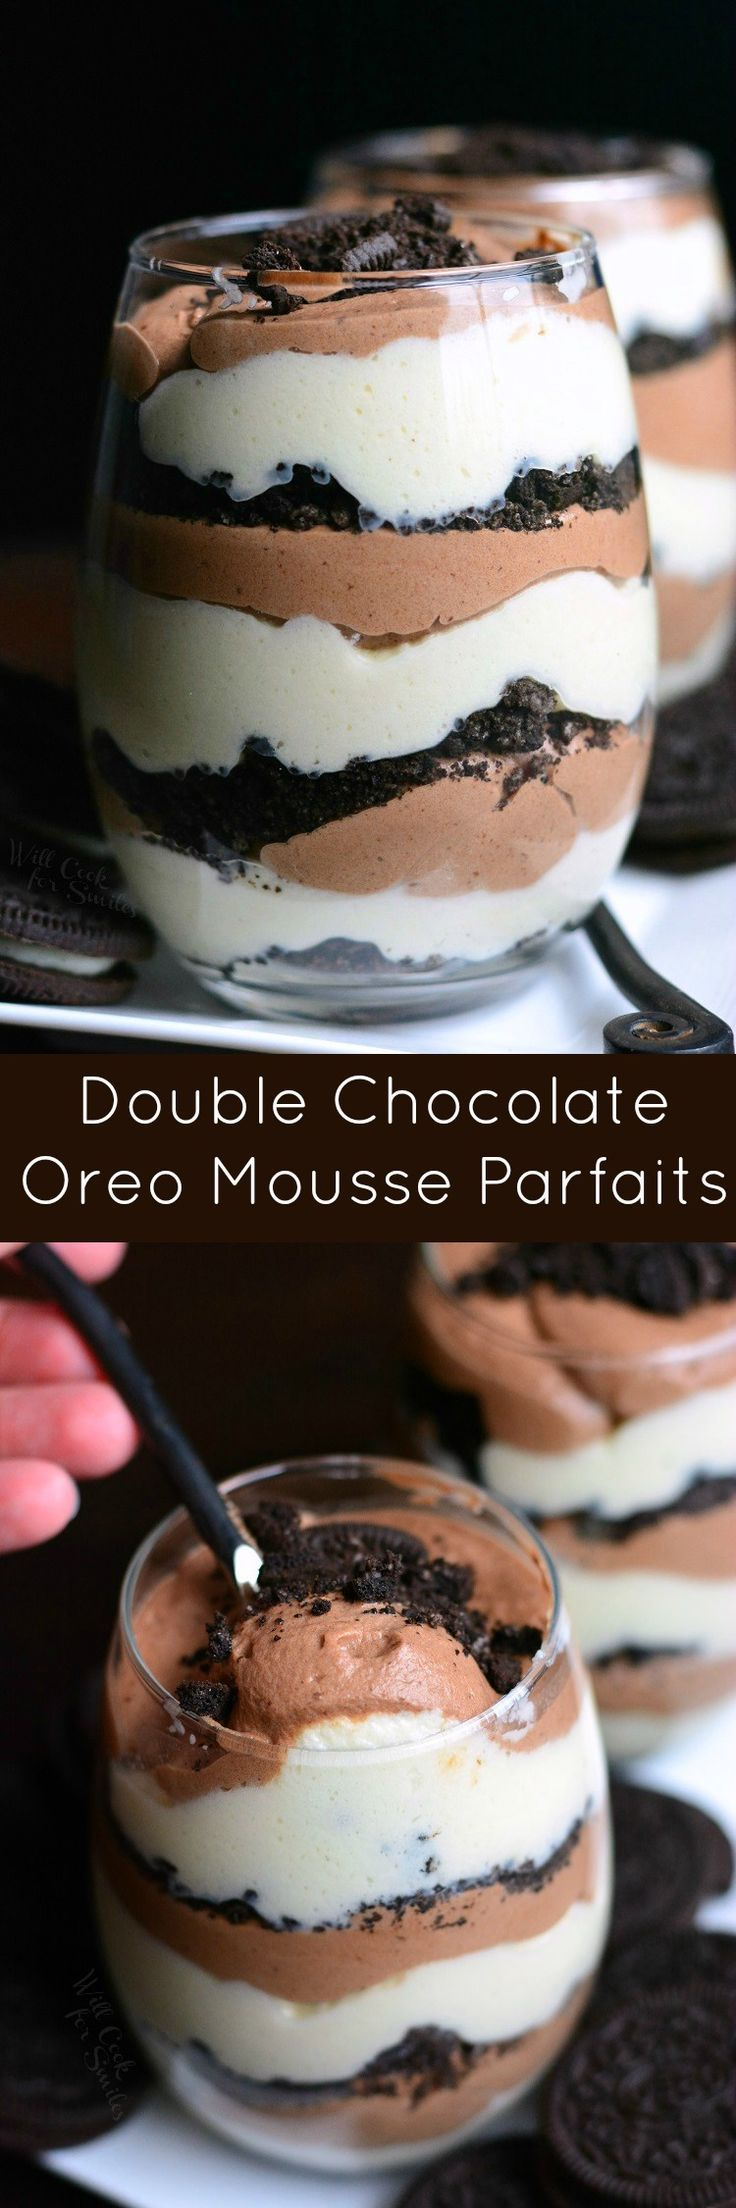 These amazing double chocolate mousse parfaits are perfect for sharing with someone special. Two types of lighter than air chocolate mousse is layered with crunchy Oreo cookie crumbles.